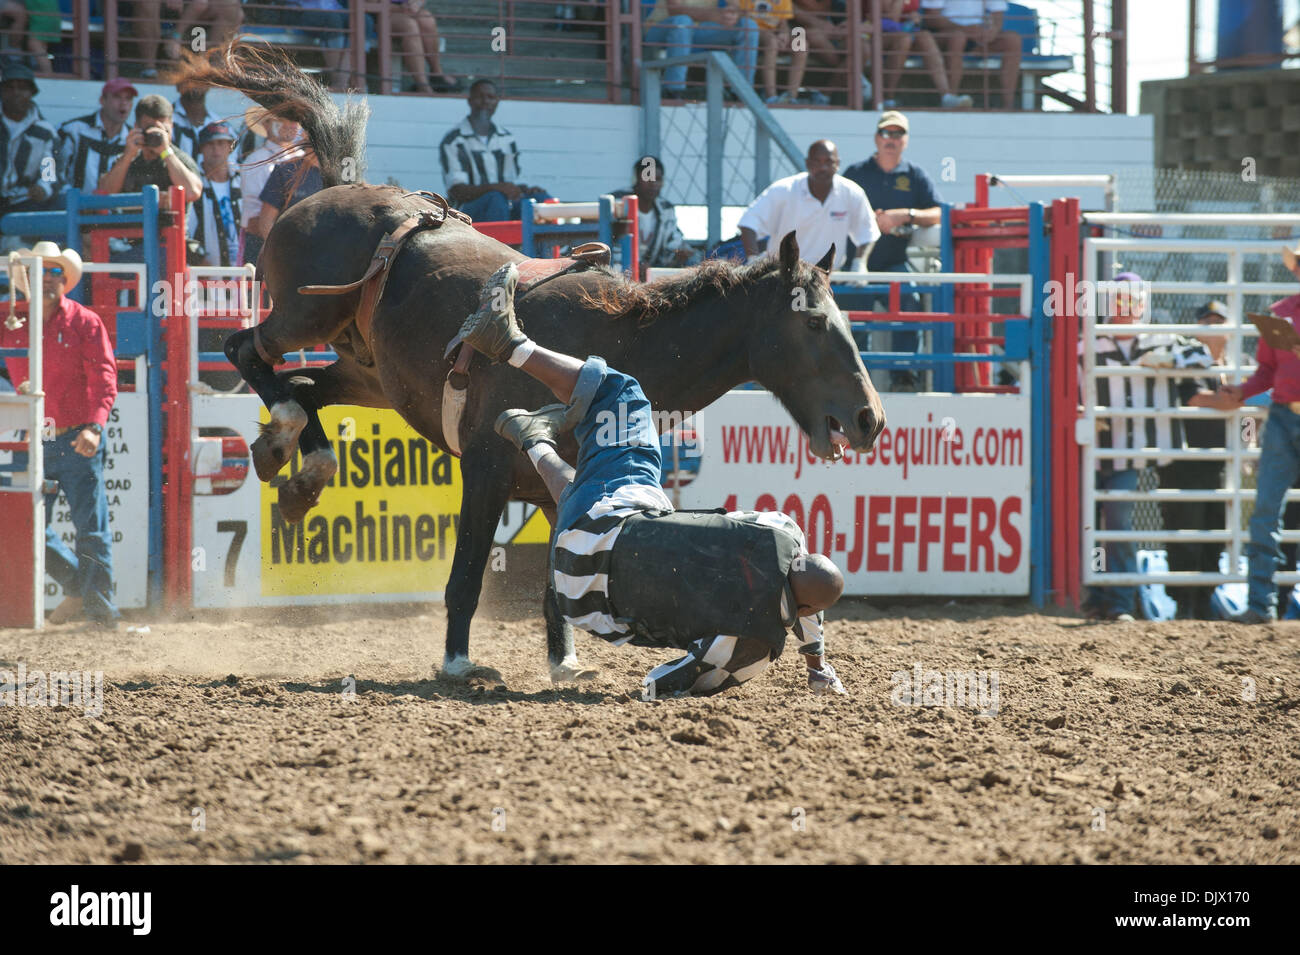 Oct 17, 2010 - Angola, Louisiana, U.S. - Inmates at the Louisiana State Penitentiary participate in the bareback riding event at the Angola prison rodeo, in Angola, Louisiana on October 17th, 2010. (Credit Image: © Scott Schexnaydre/ZUMApress.com) - Stock Image